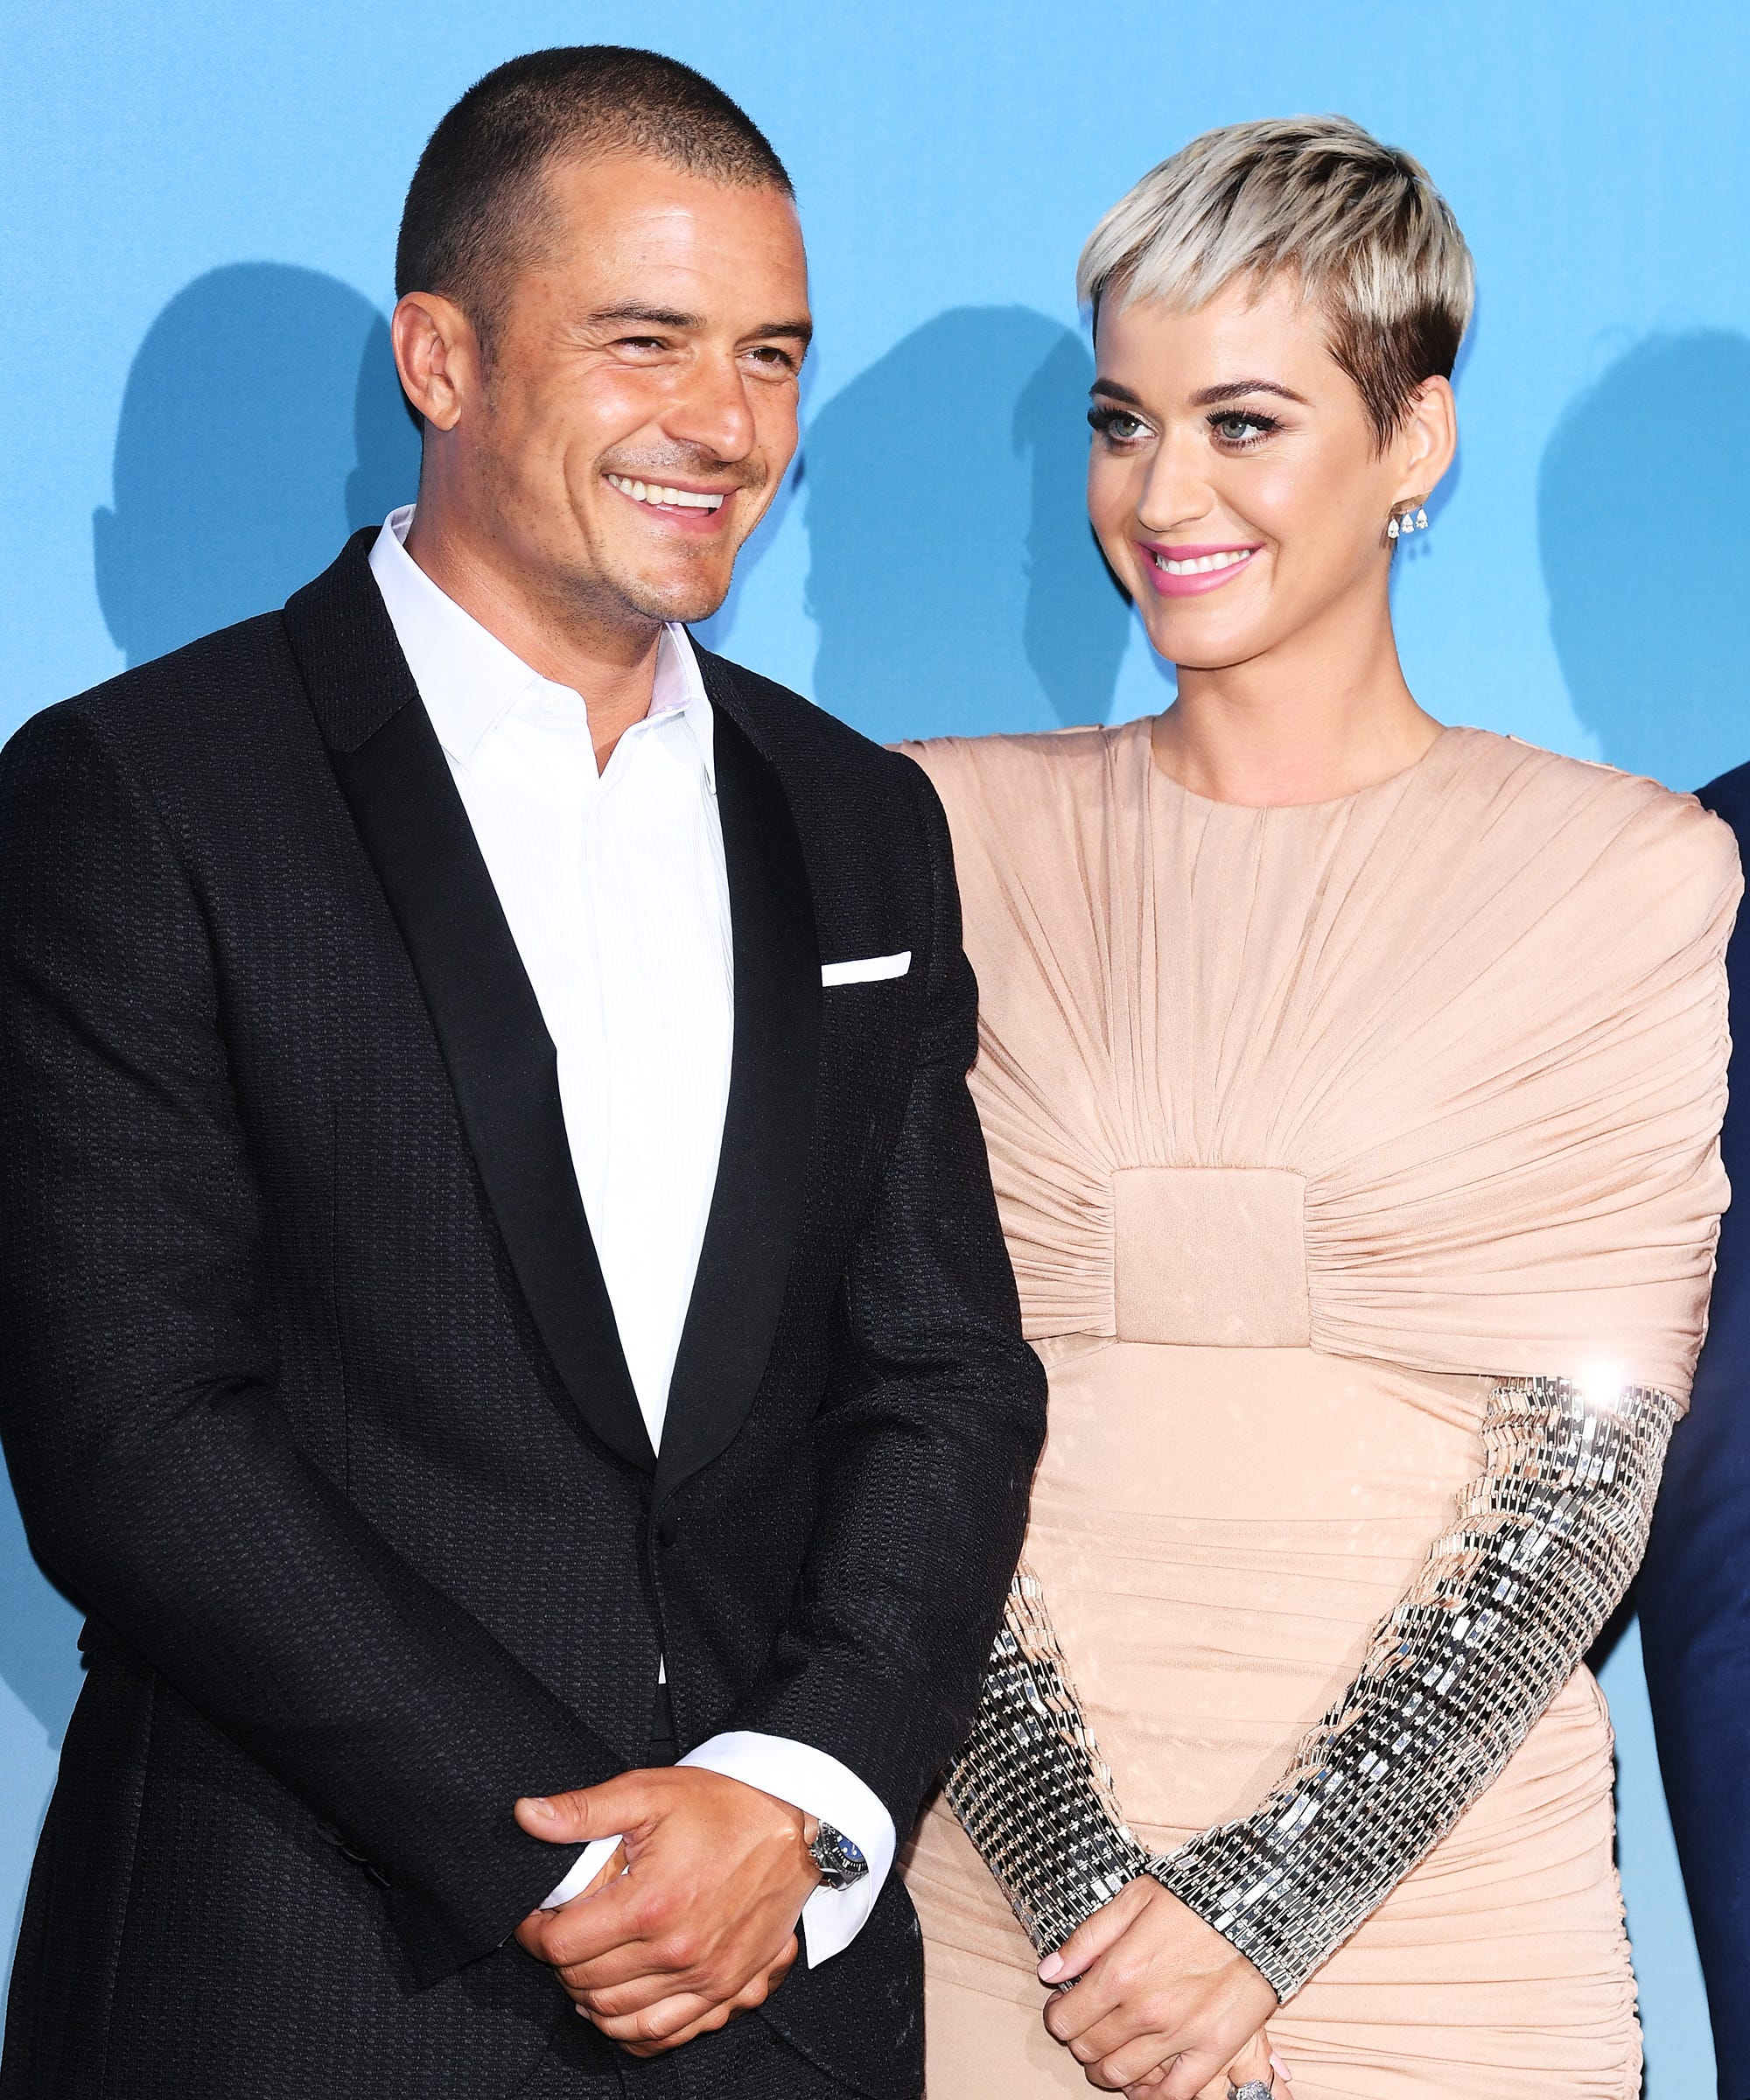 Katy Perry and Orlando Bloom Are Officially BackTogether